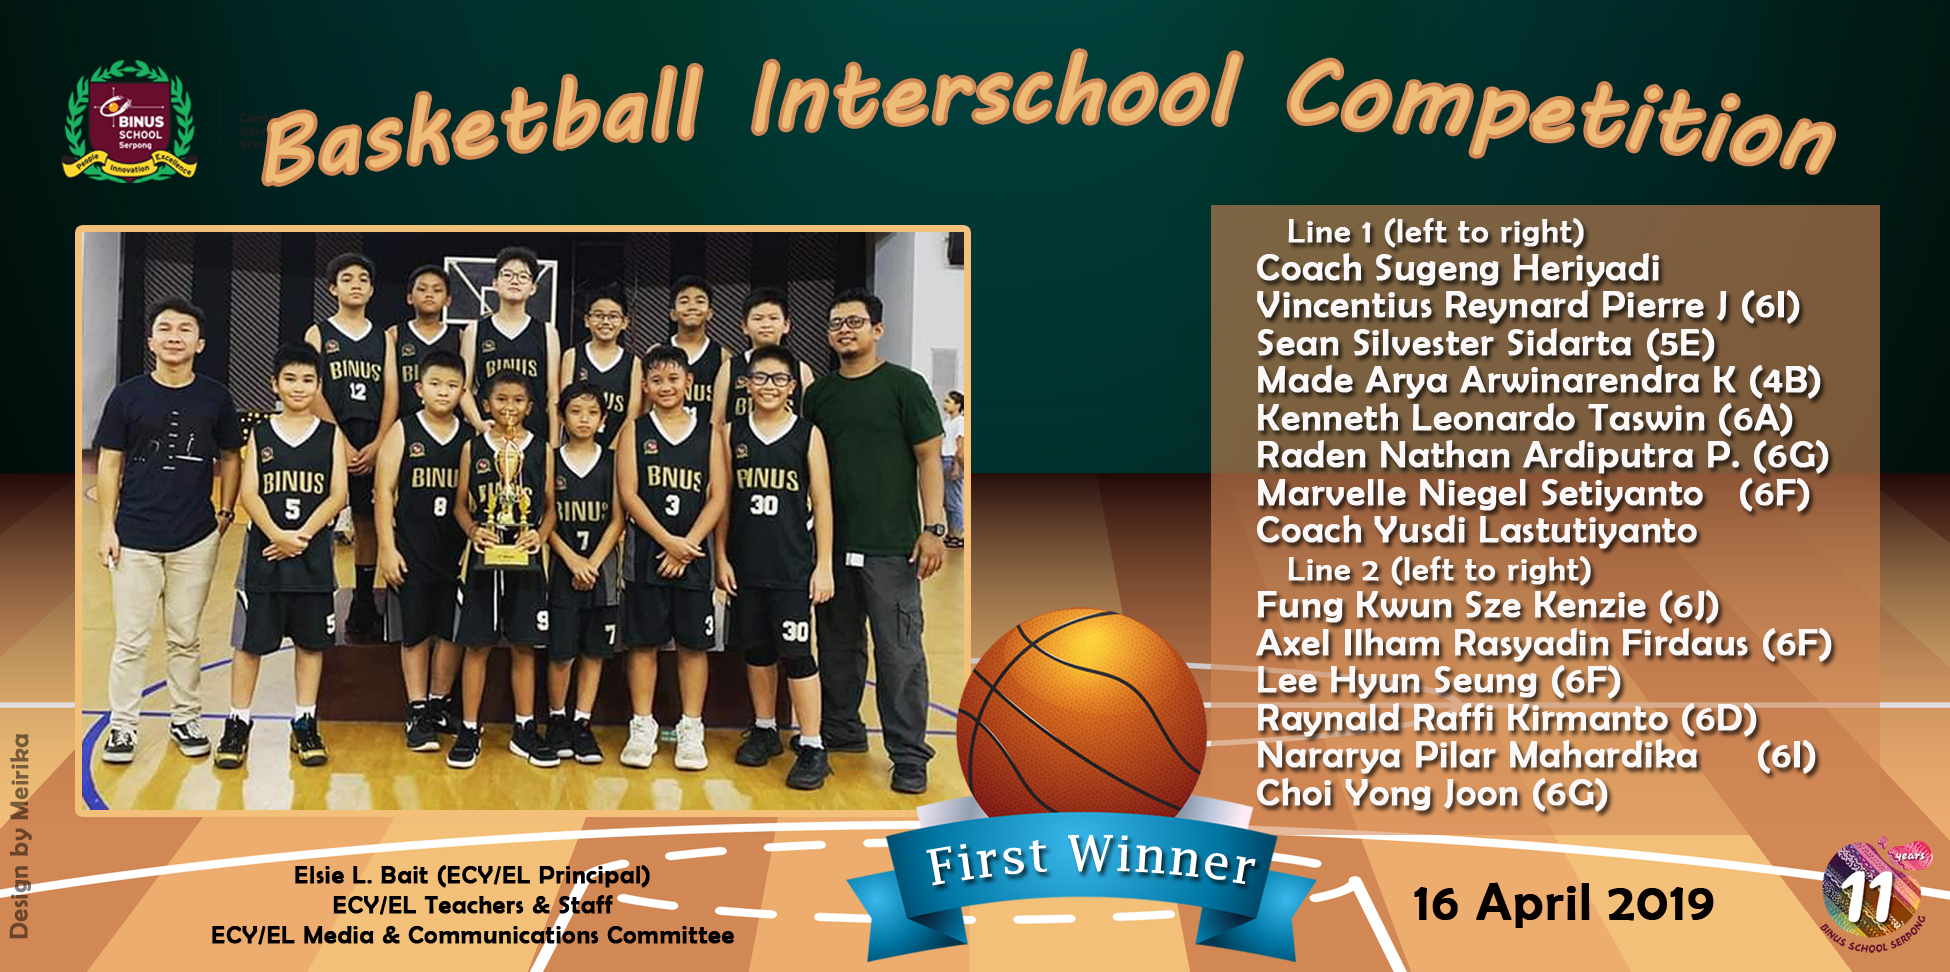 Basketball Interschool Competition